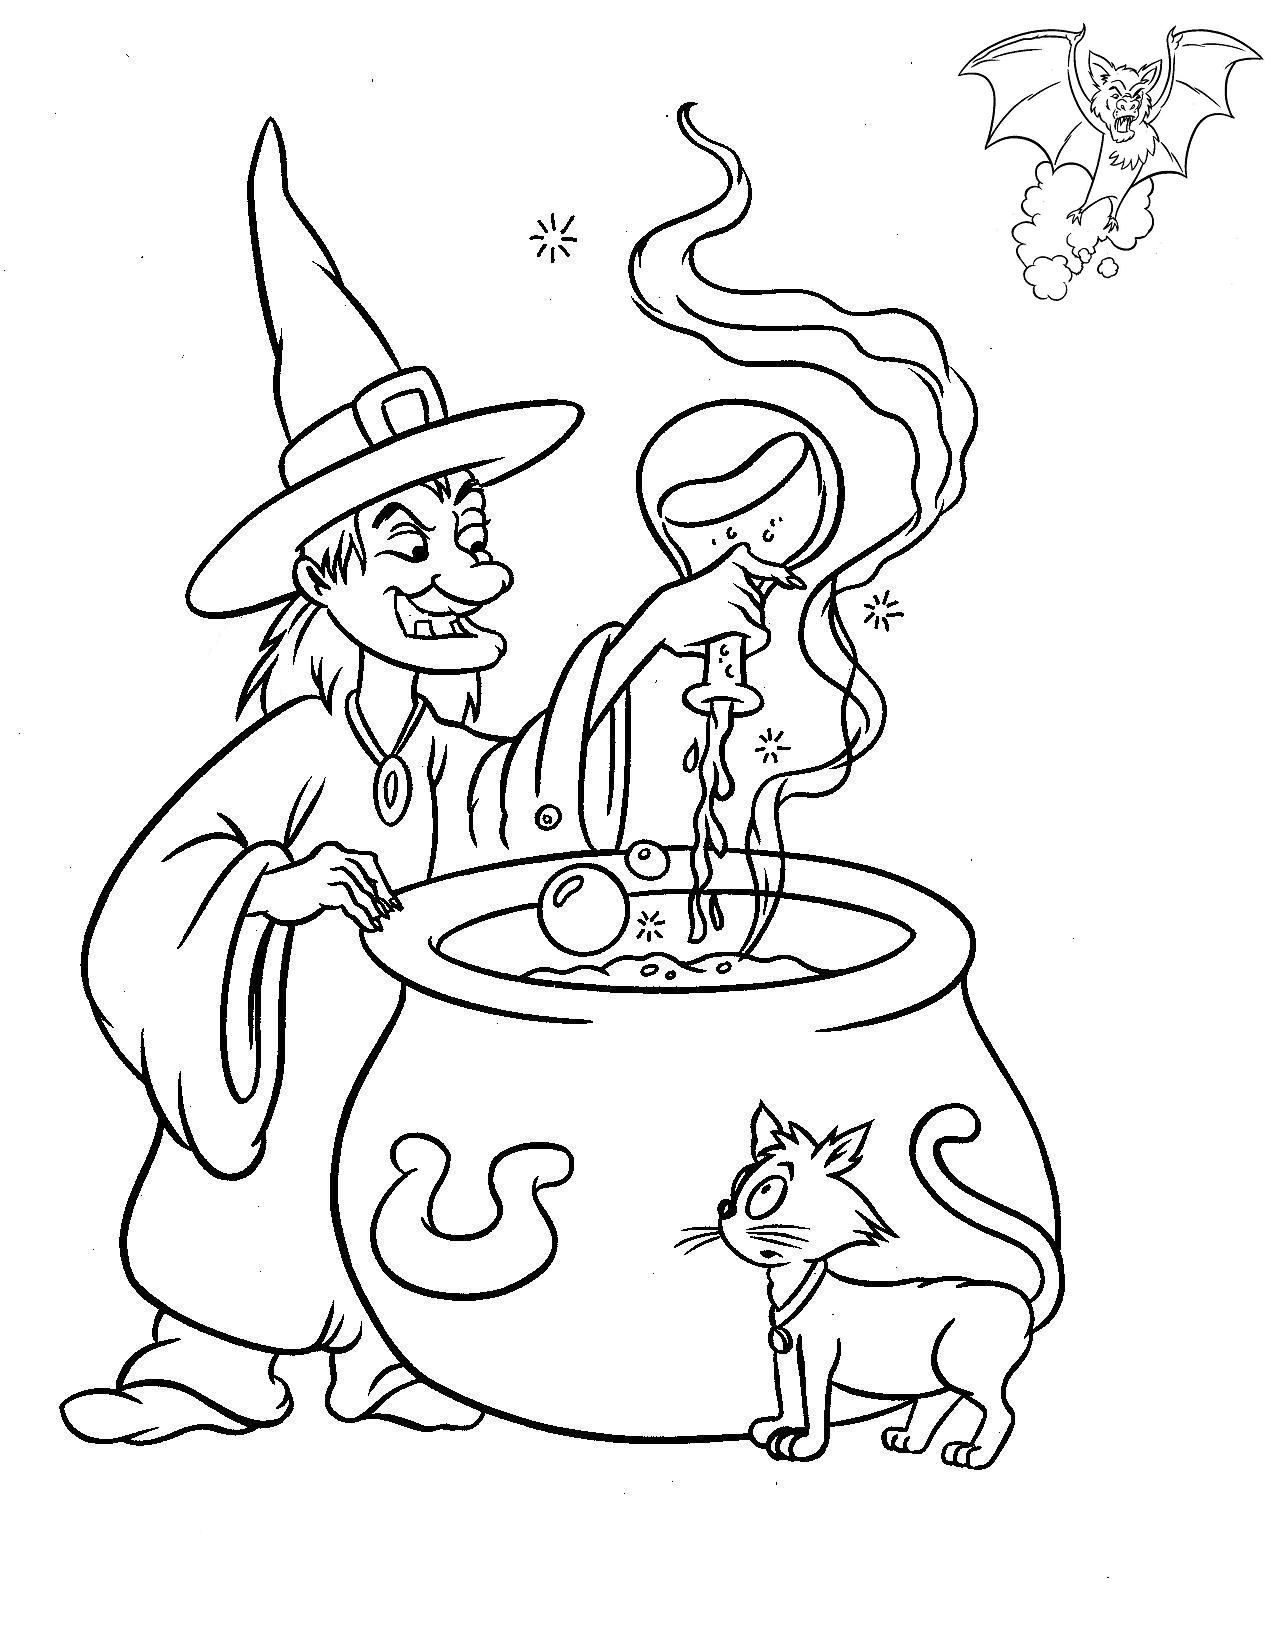 Halloween Coloring Page - Witch. source: freekidscoloringandcrafts ...